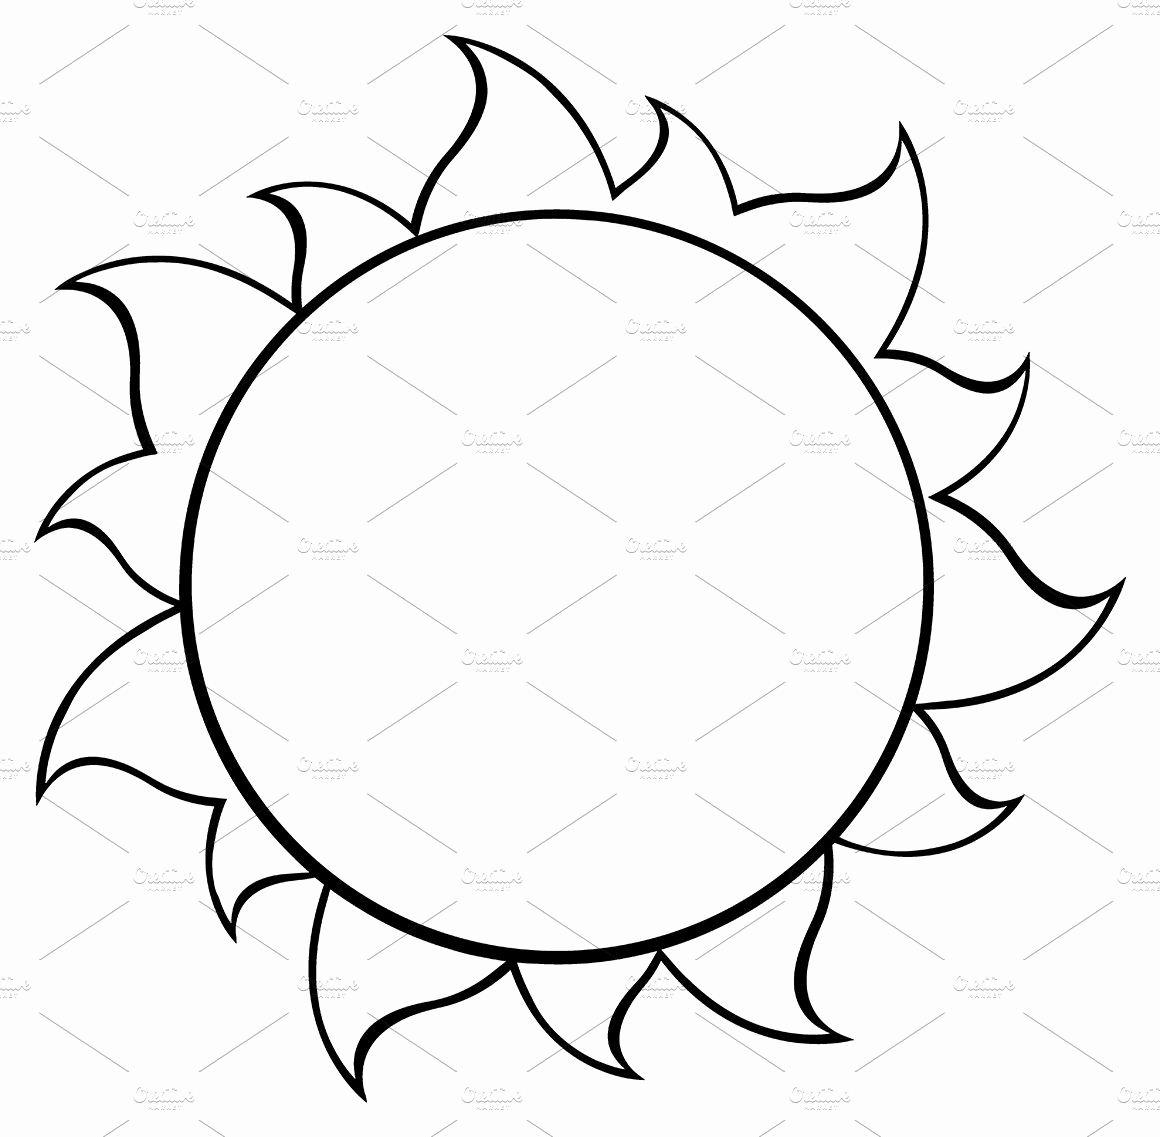 Black and White Illustrations Luxury Black and White Simple Sun Illustrations Creative Market